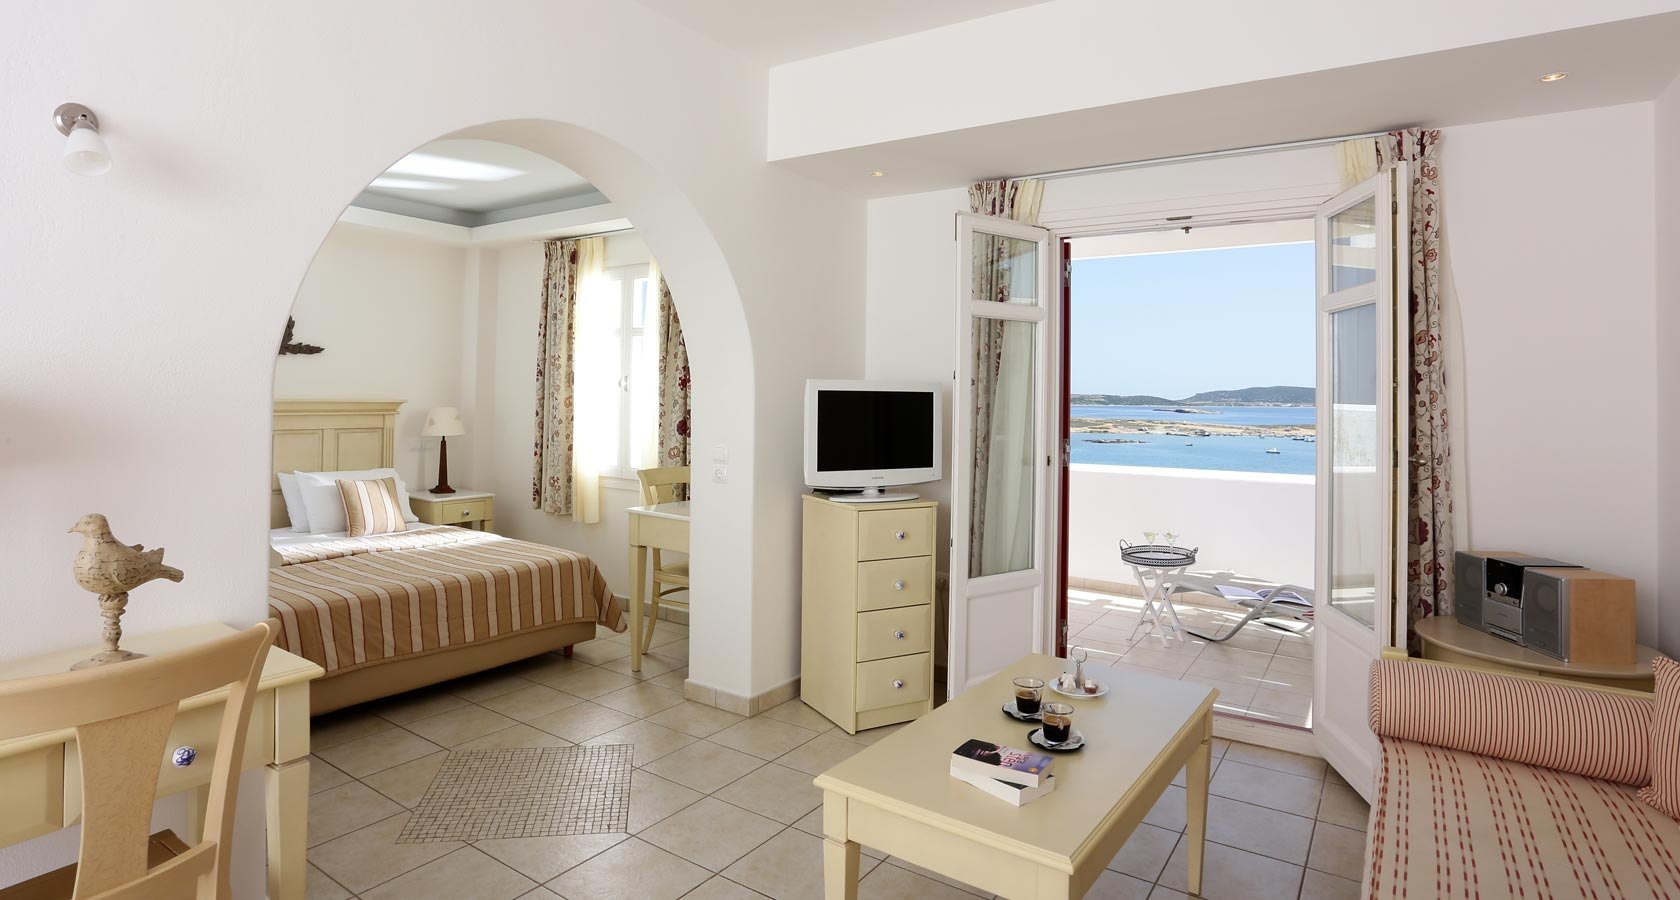 Paros Accommodation in Executive Suites - Stelia Mare Hotel Naoussa Paros Greece